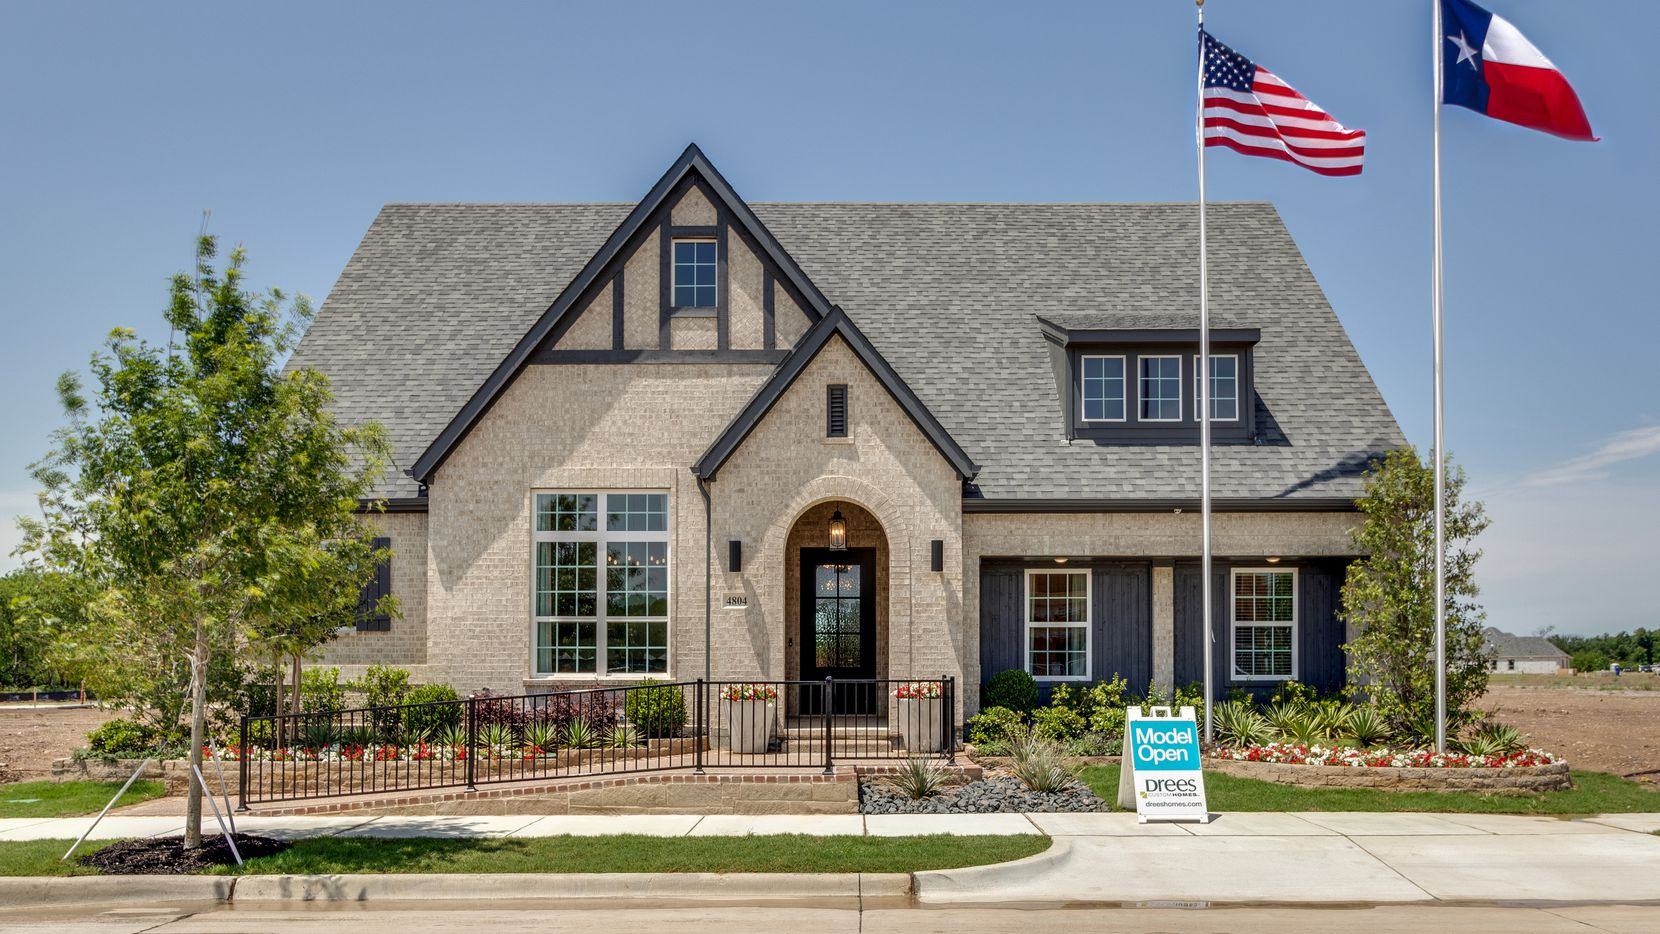 Drees Custom Homes' new models in the Viridian development are aimed at 55-plus buyers.